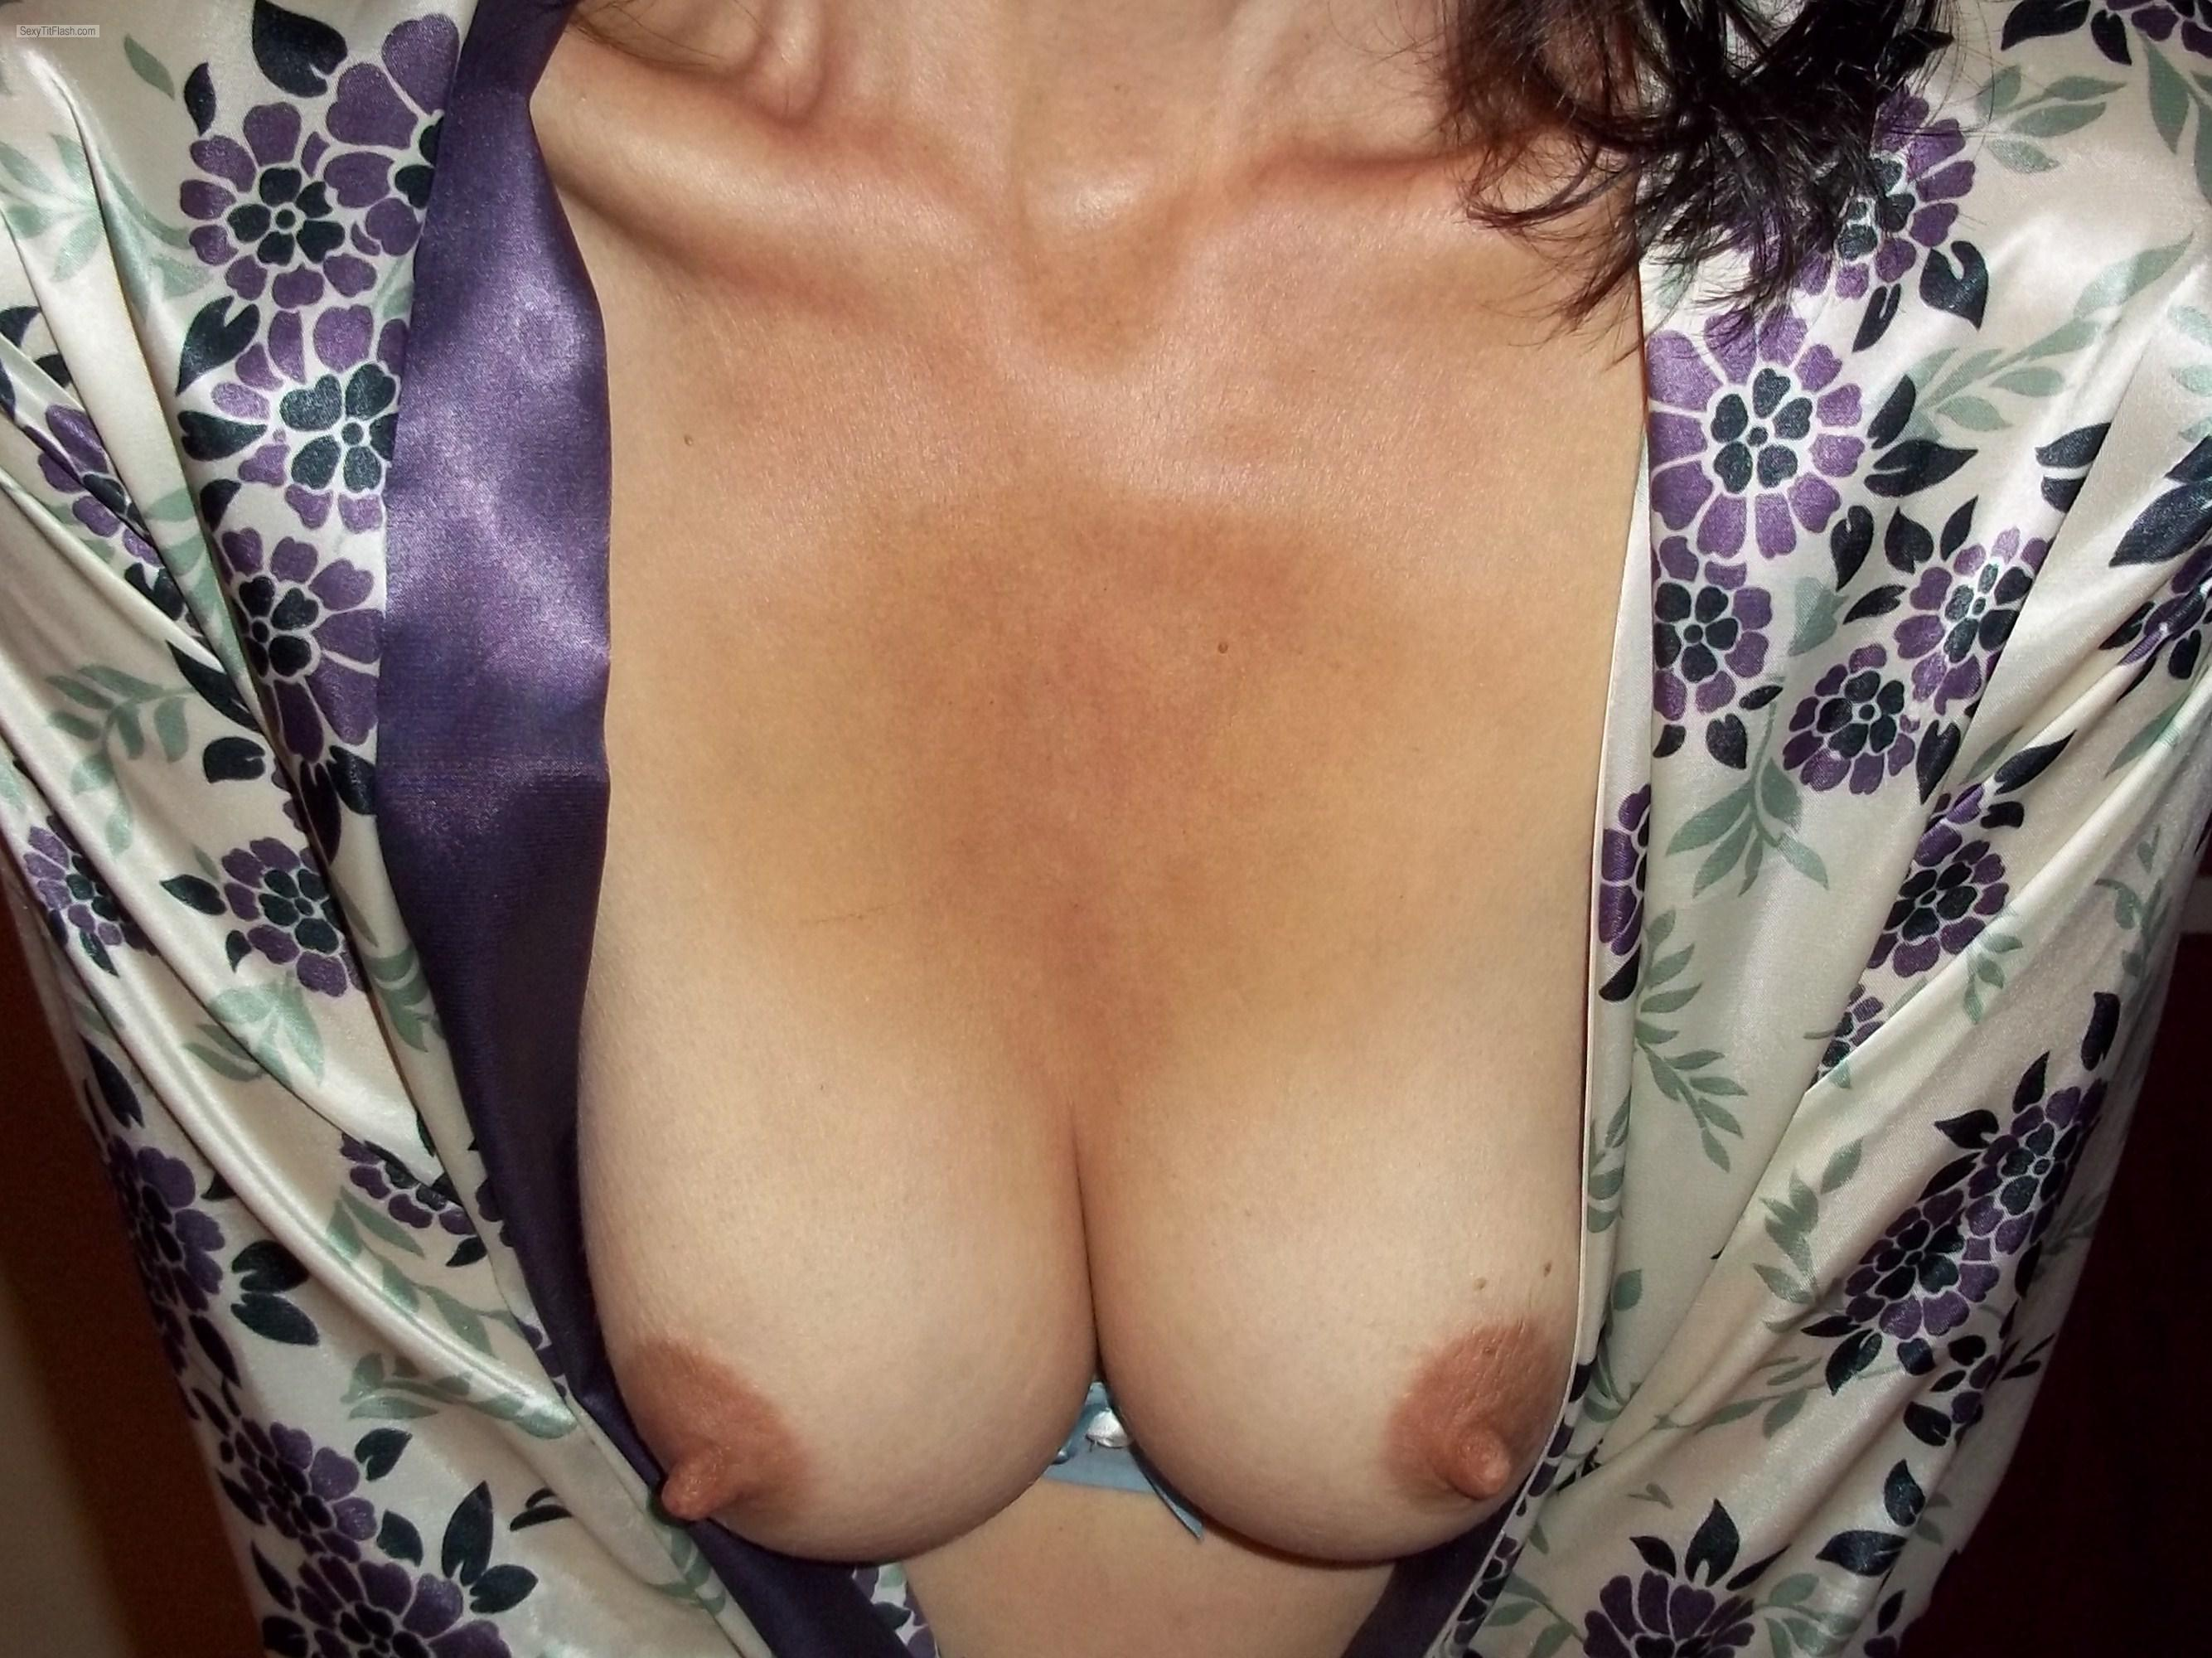 Tit Flash: My Small Tits - Dee from Canada